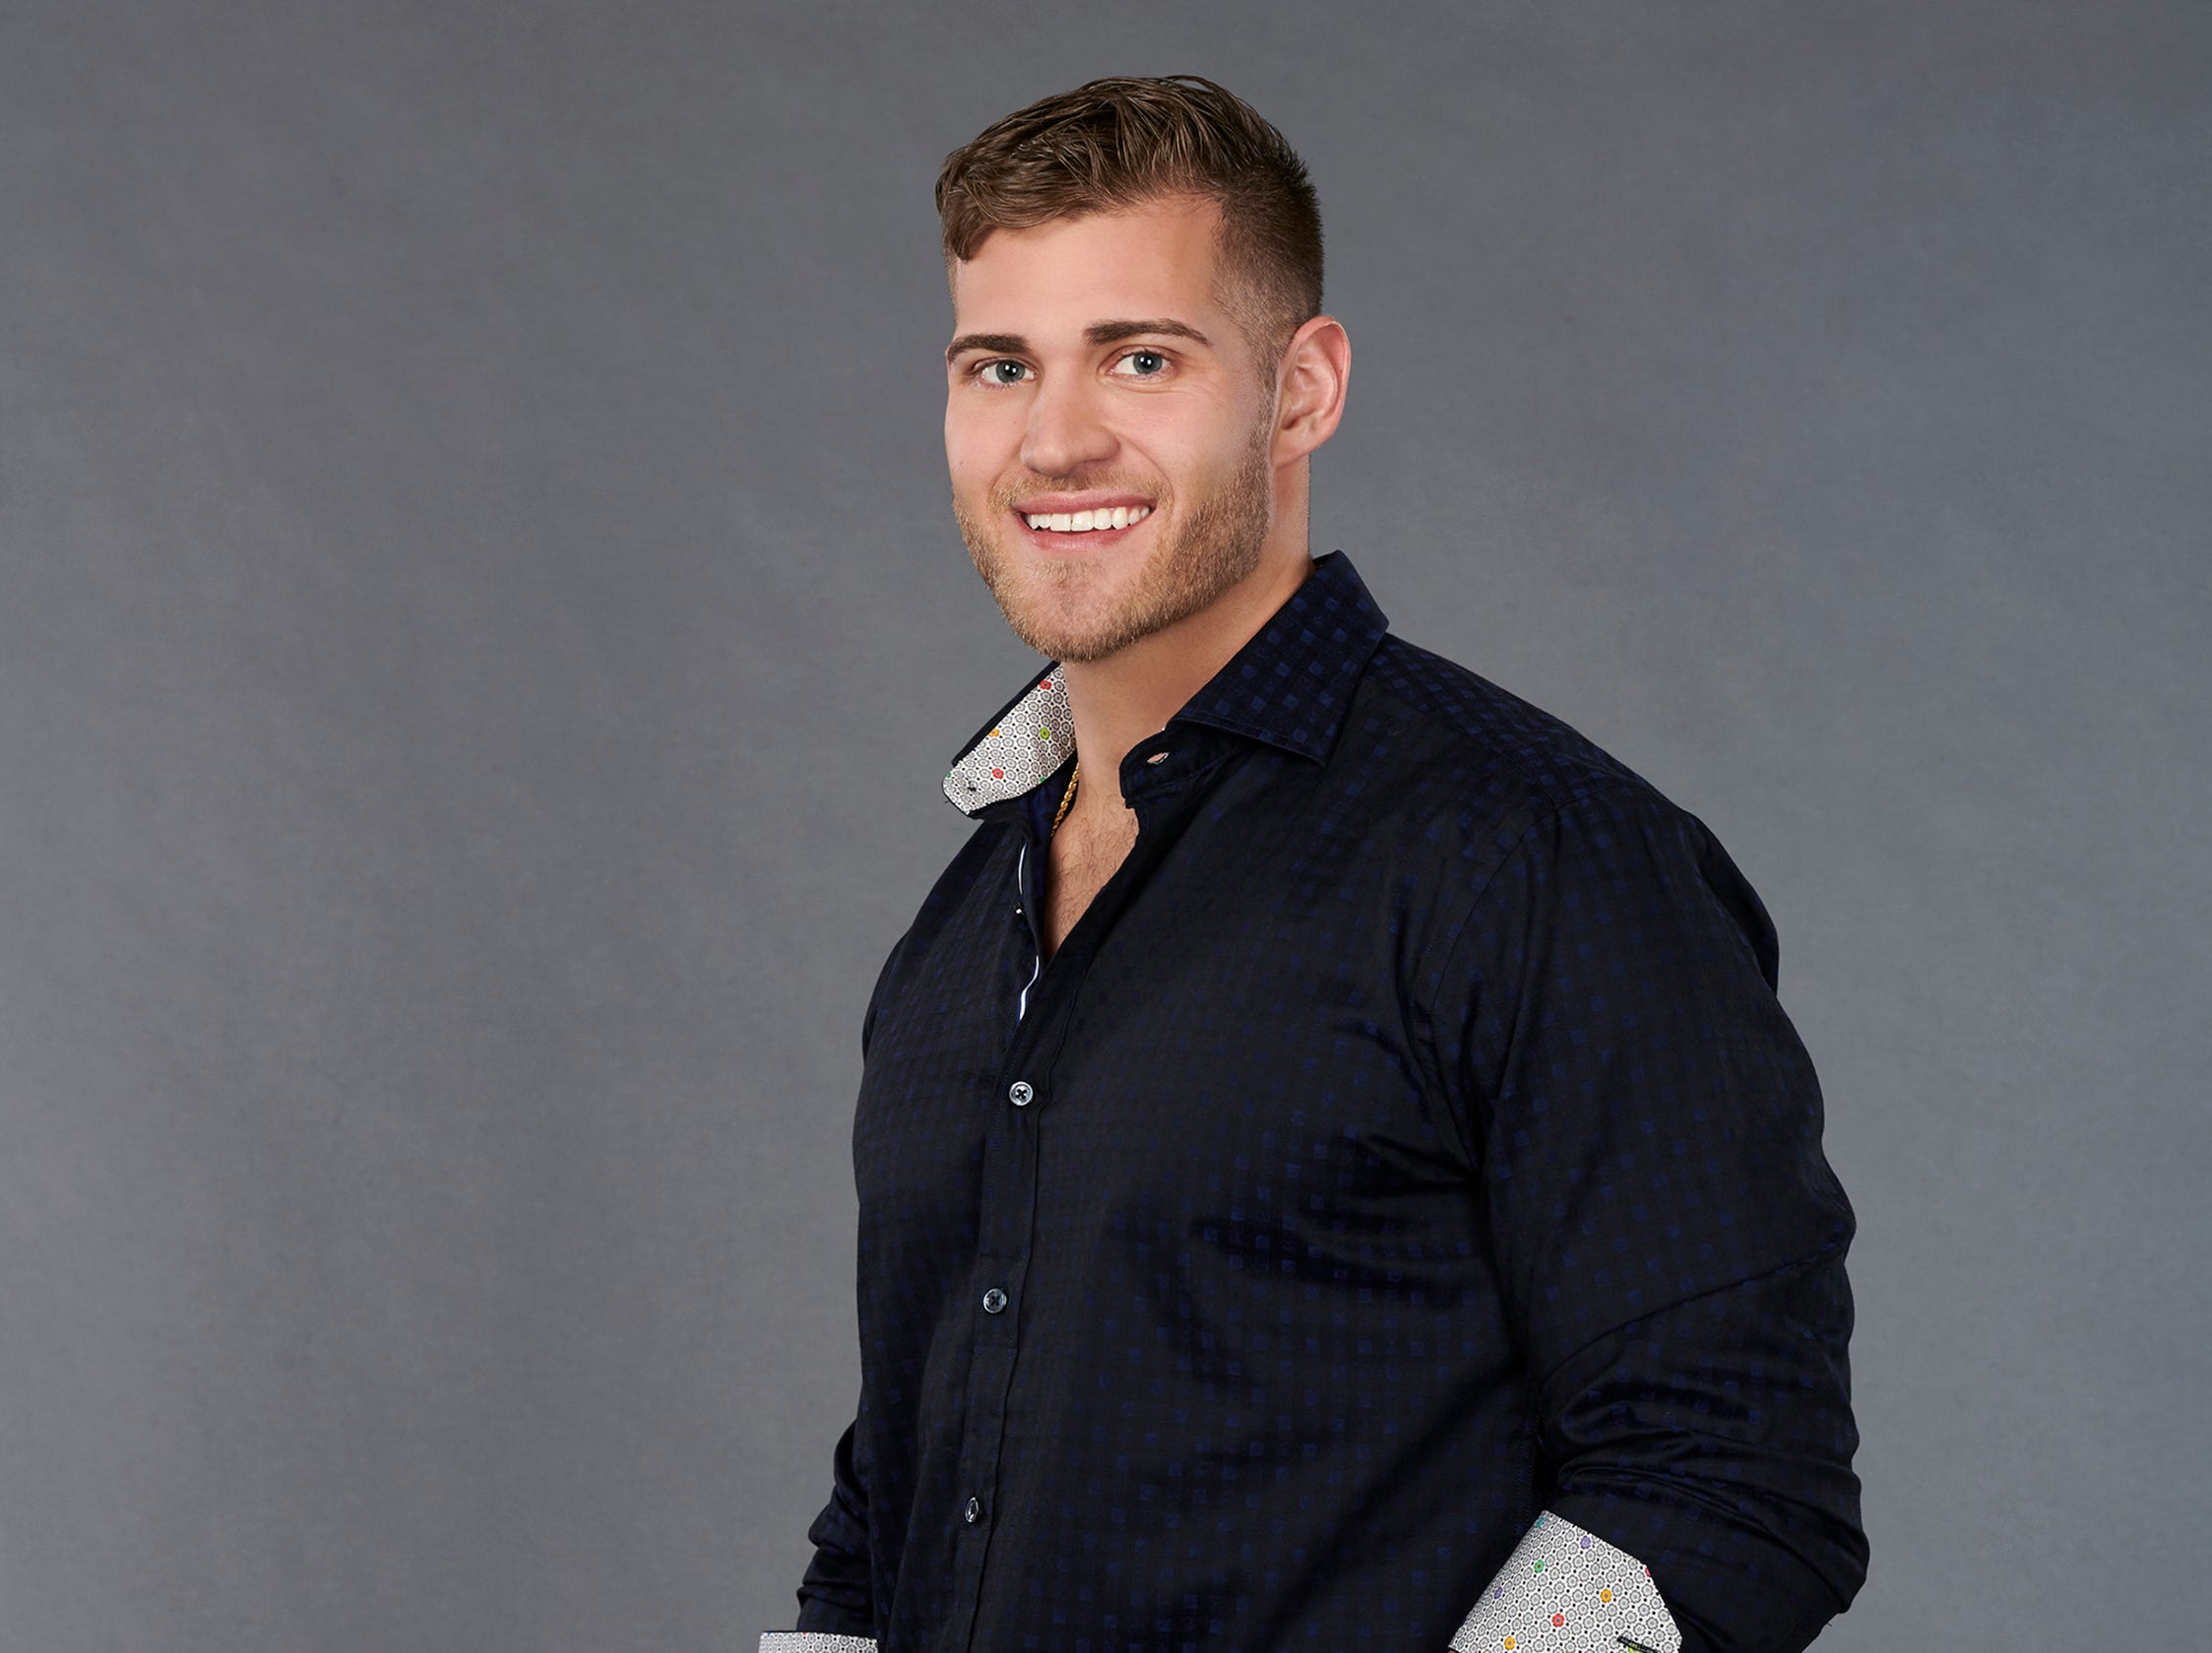 """The Bachelorette"" Season 23 contestant:  Luke P., 24, Gainesville, Georgia, import/export manager"